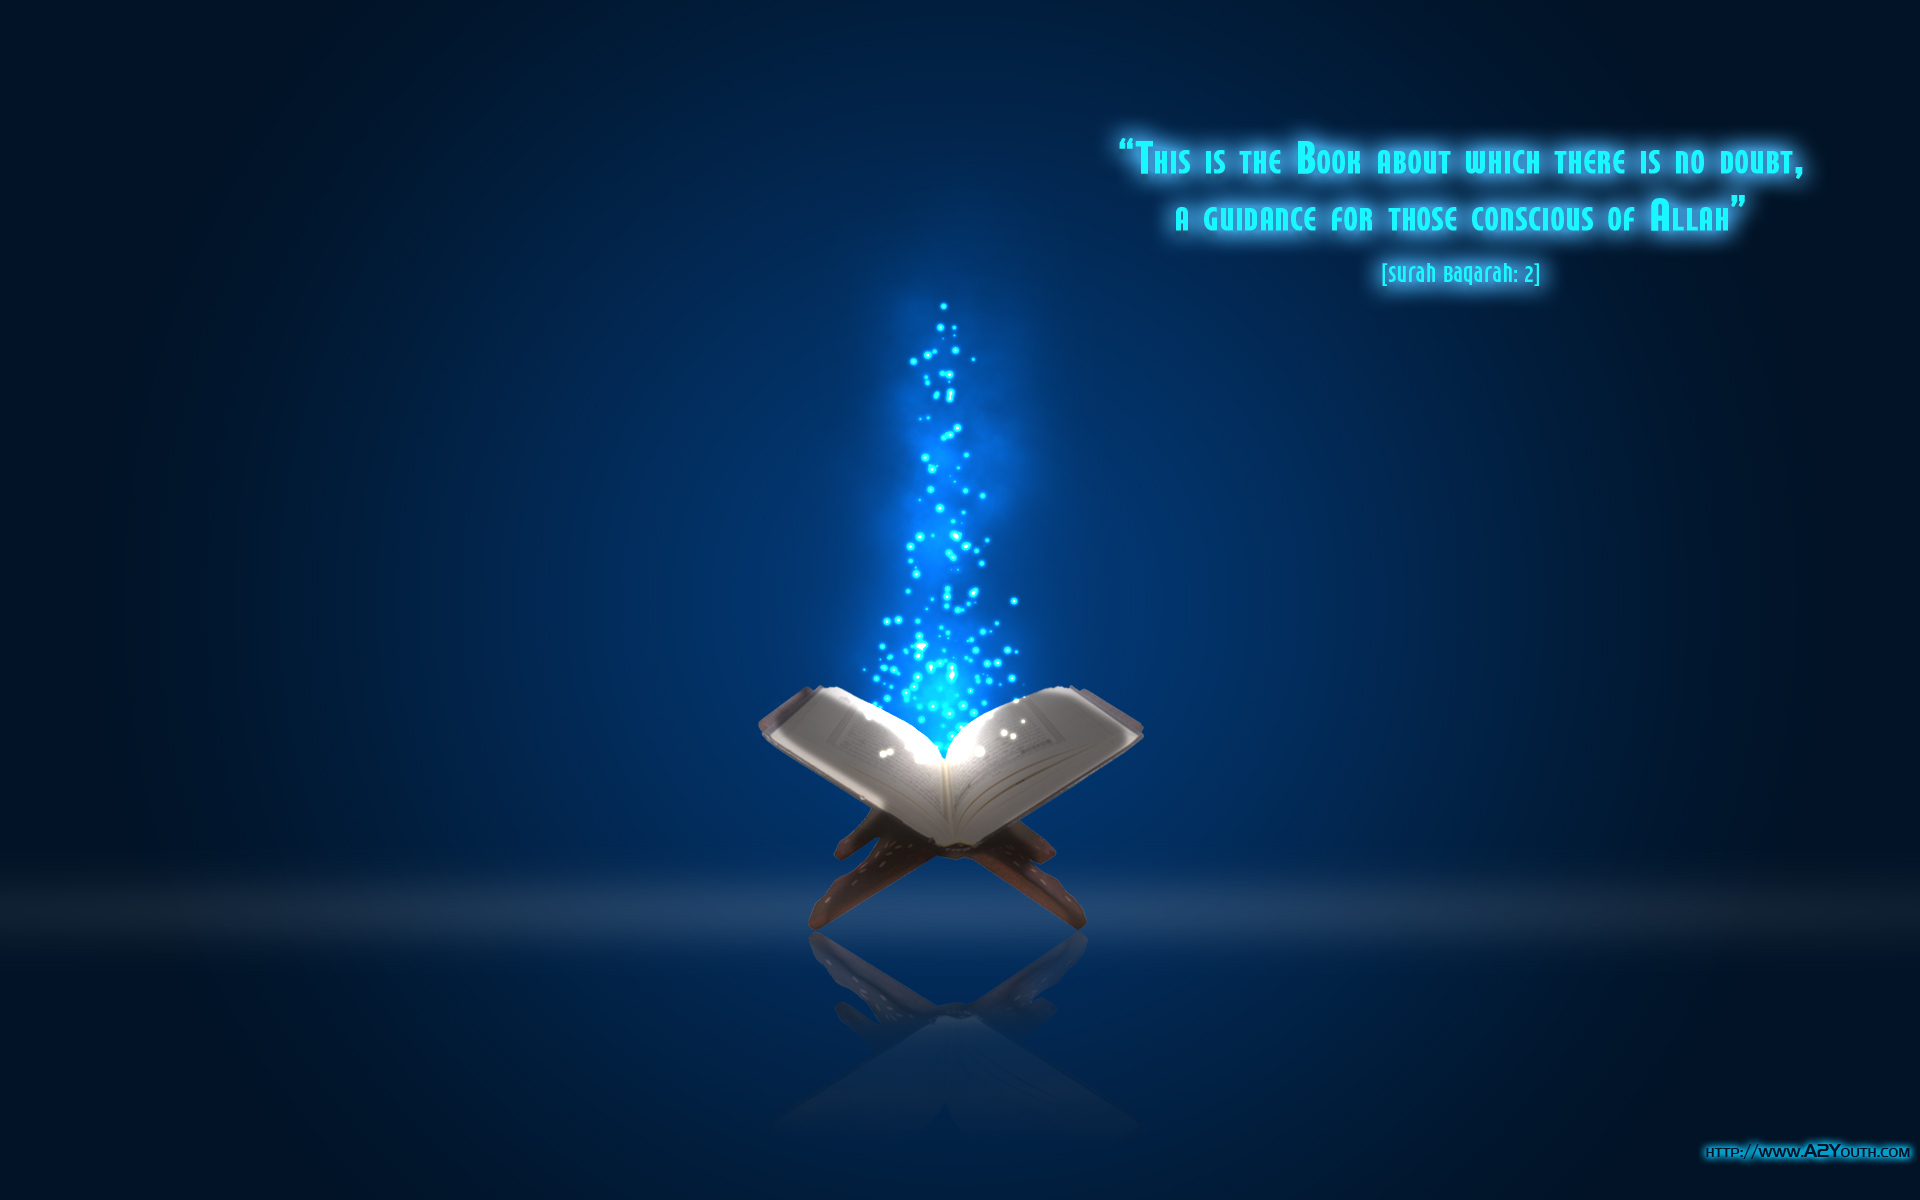 Book of No Doubt - Quran - Islamic Wallpapers - A2Youth.com for islamic light wallpaper  45ifm